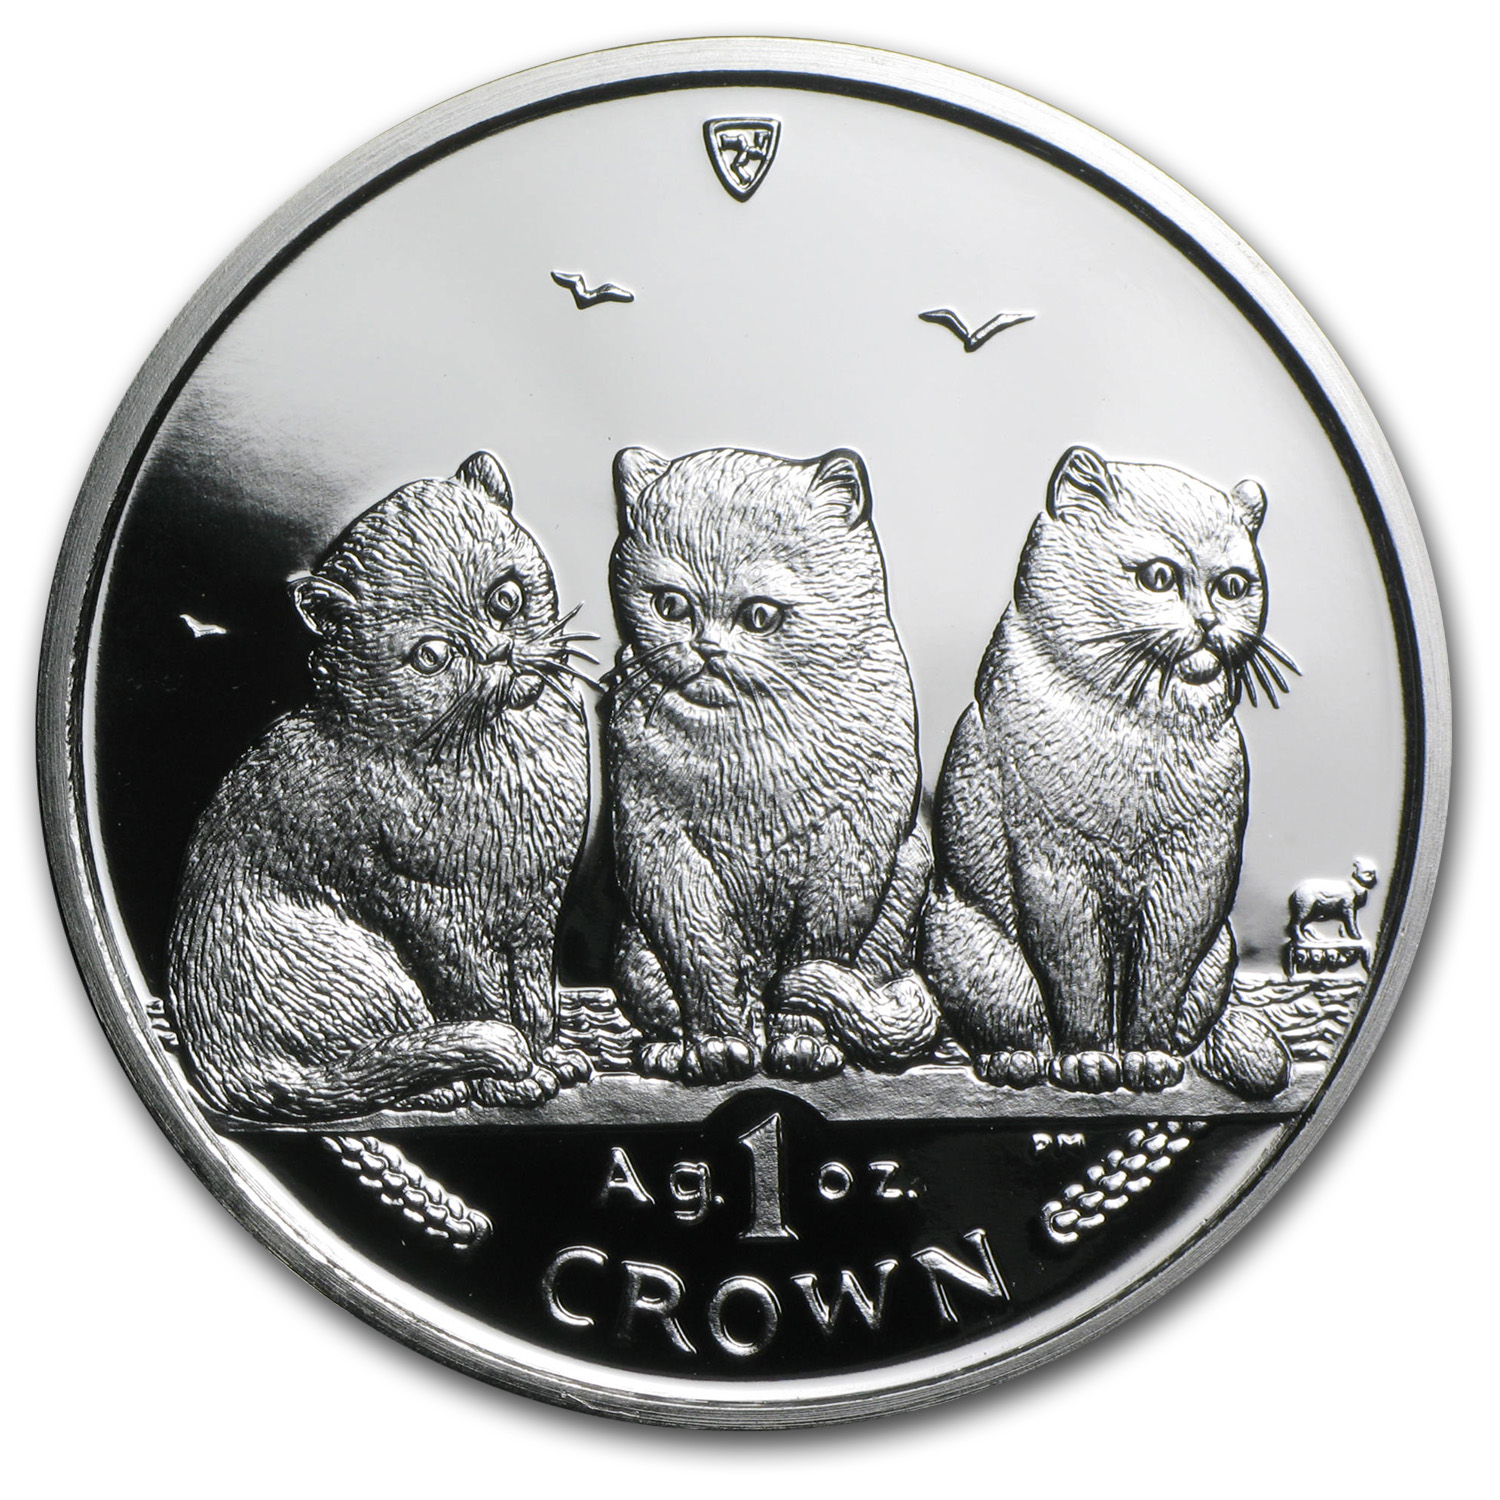 Isle of Man 2006 1 Crown Silver Proof Shorthair Cats